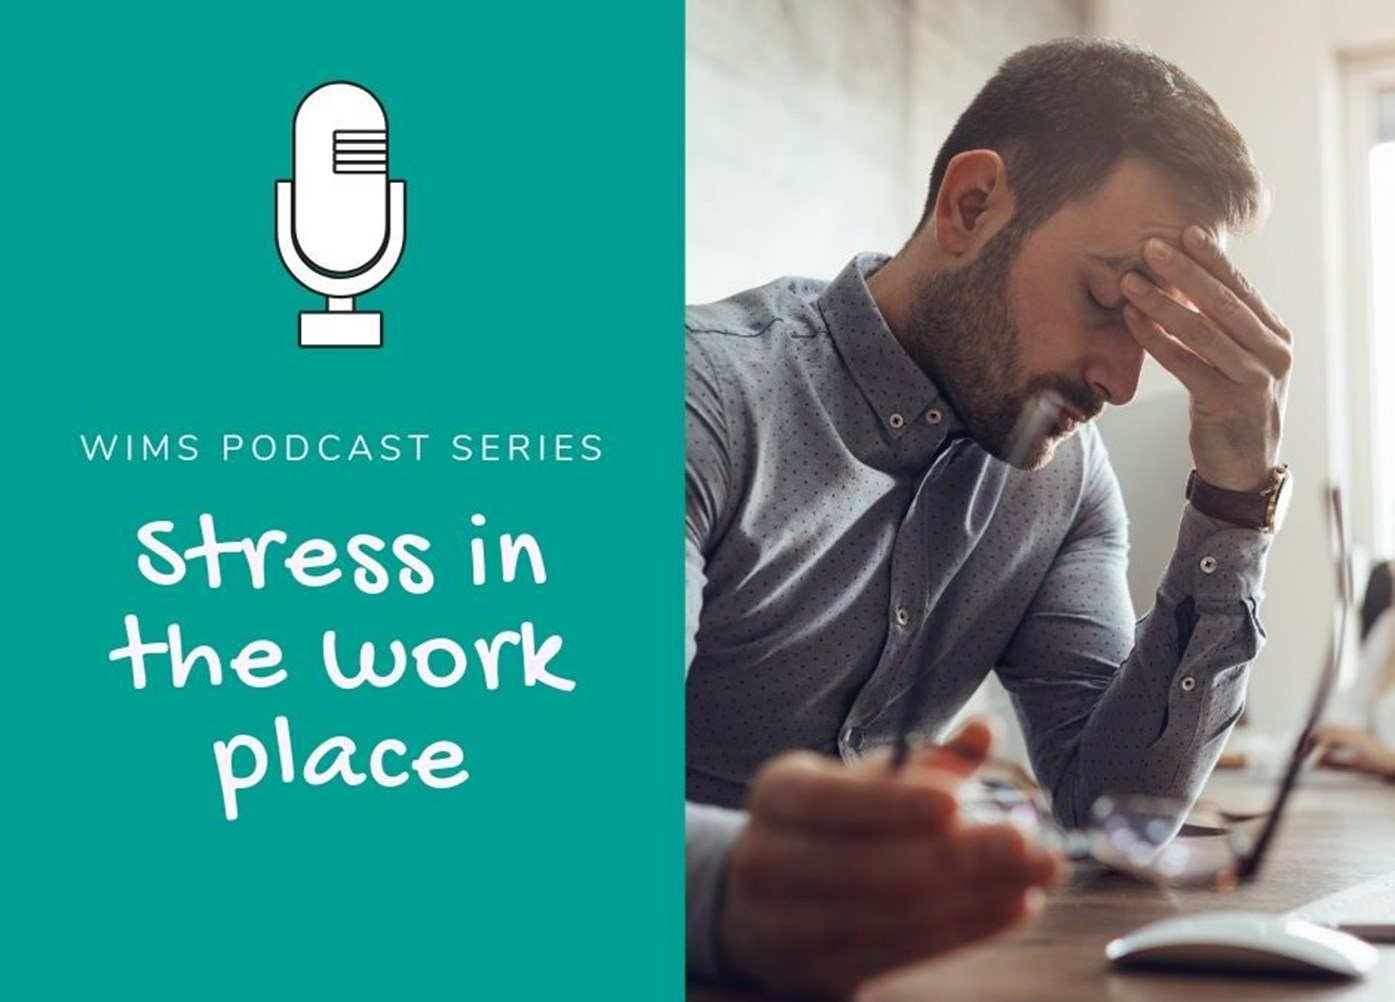 stress in the work place